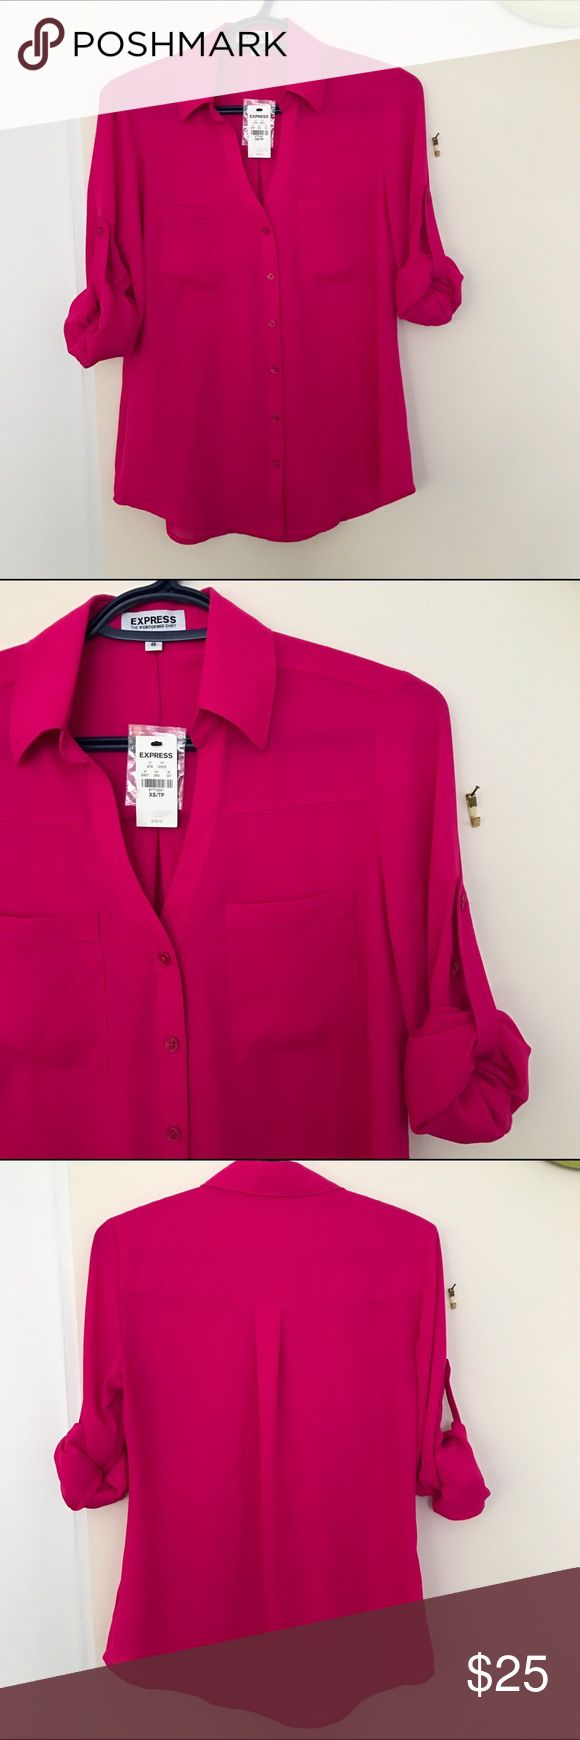 """Express portofino NWT hot pink shirt Brand new with tags. Sleeves can be rolled up and buttoned. Chest is 18"""", length is 27"""" and sleeve length is 23.5"""". Express Tops Blouses"""